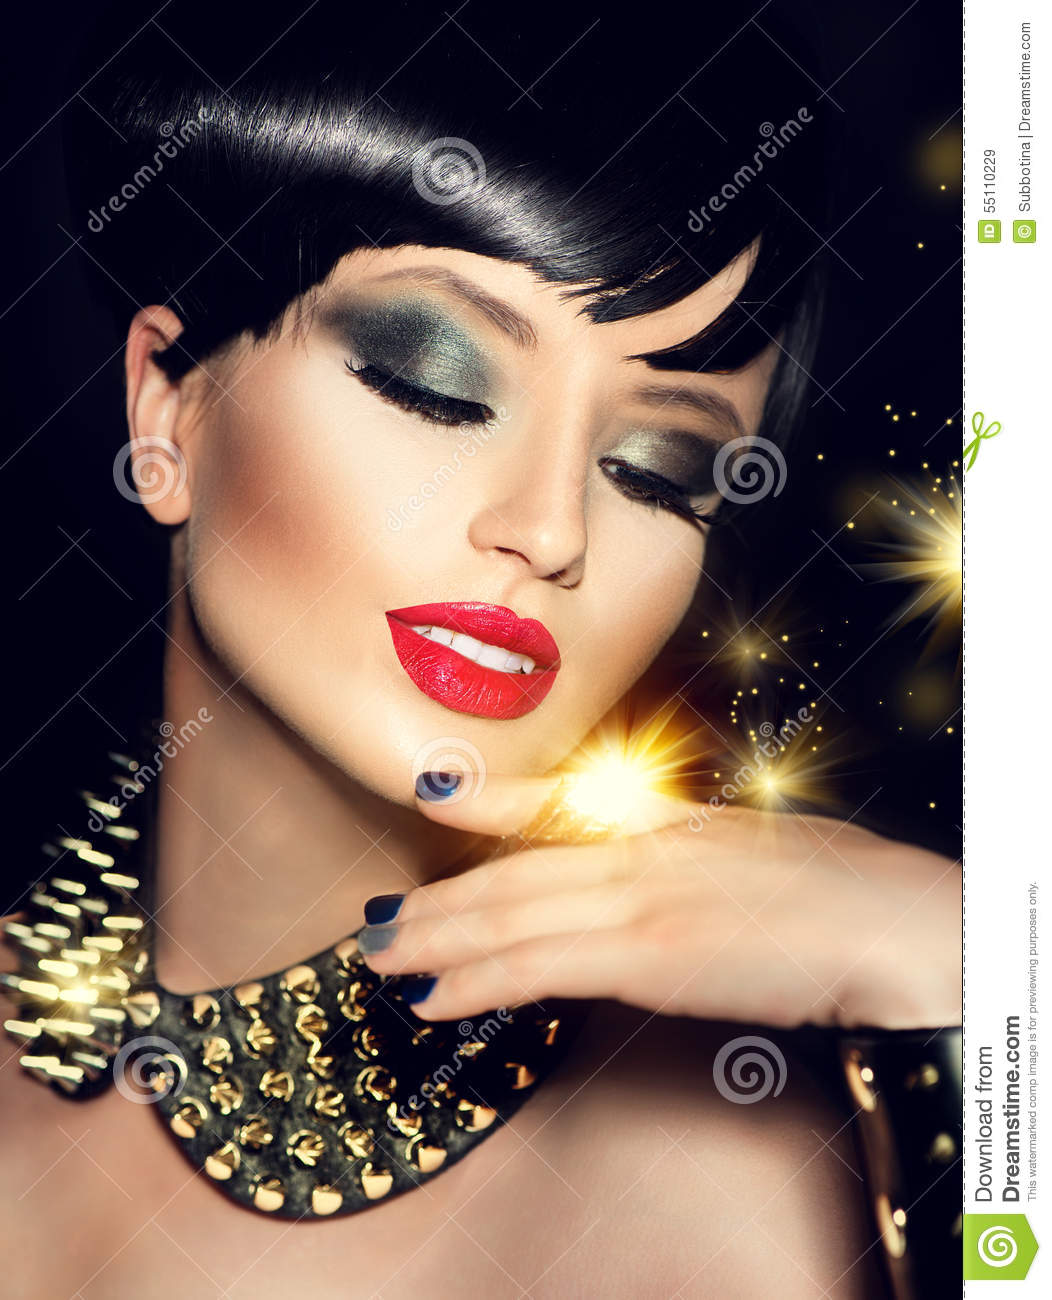 Beauty Fashion Model Girl With Short Hair Stock Image